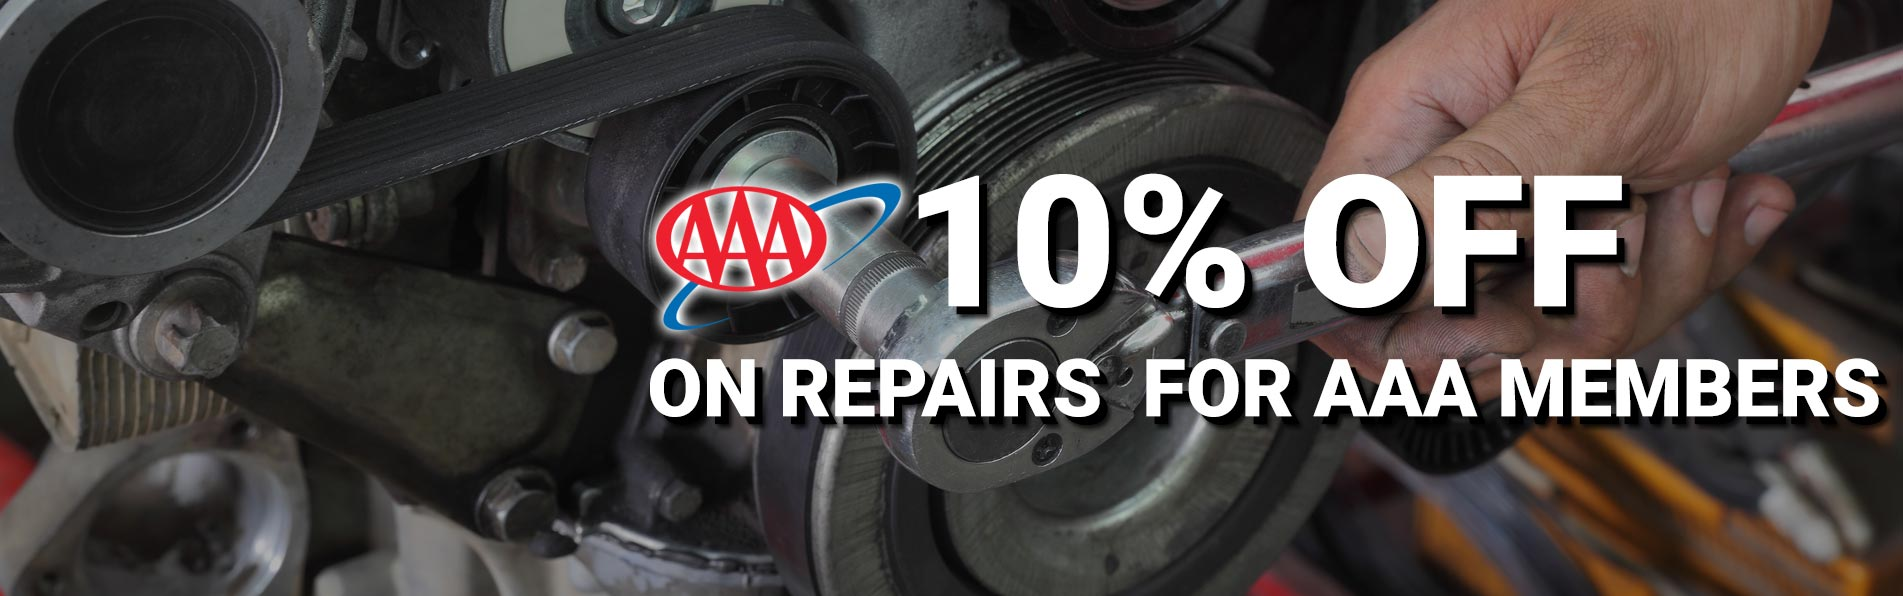 10% off on repairs for AAA Members